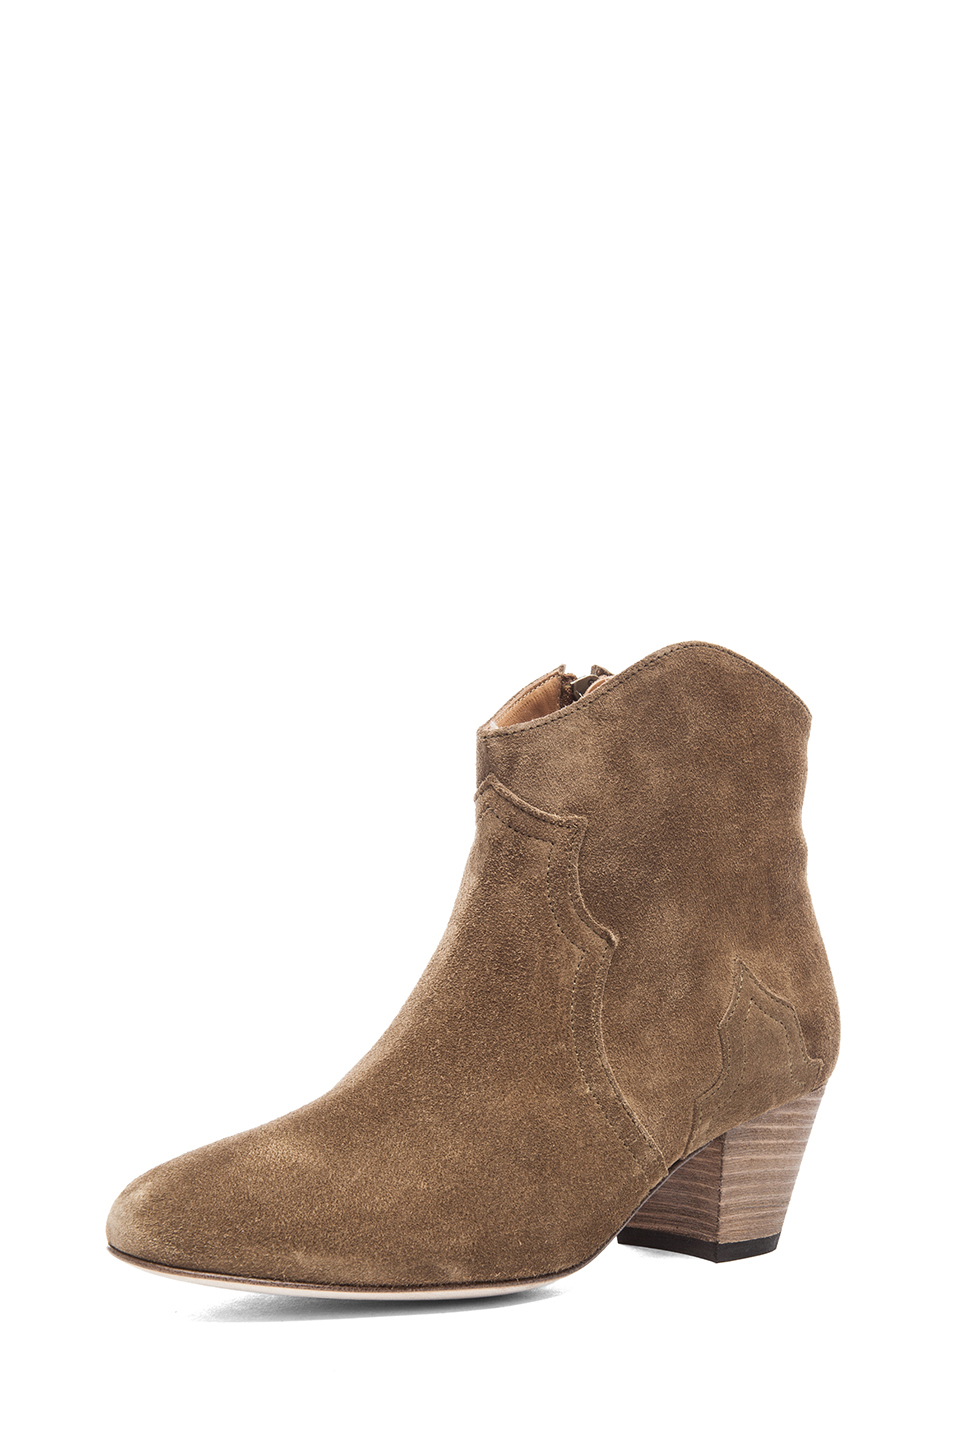 Isabel Marant|Dicker Velvet Bootie in Brown